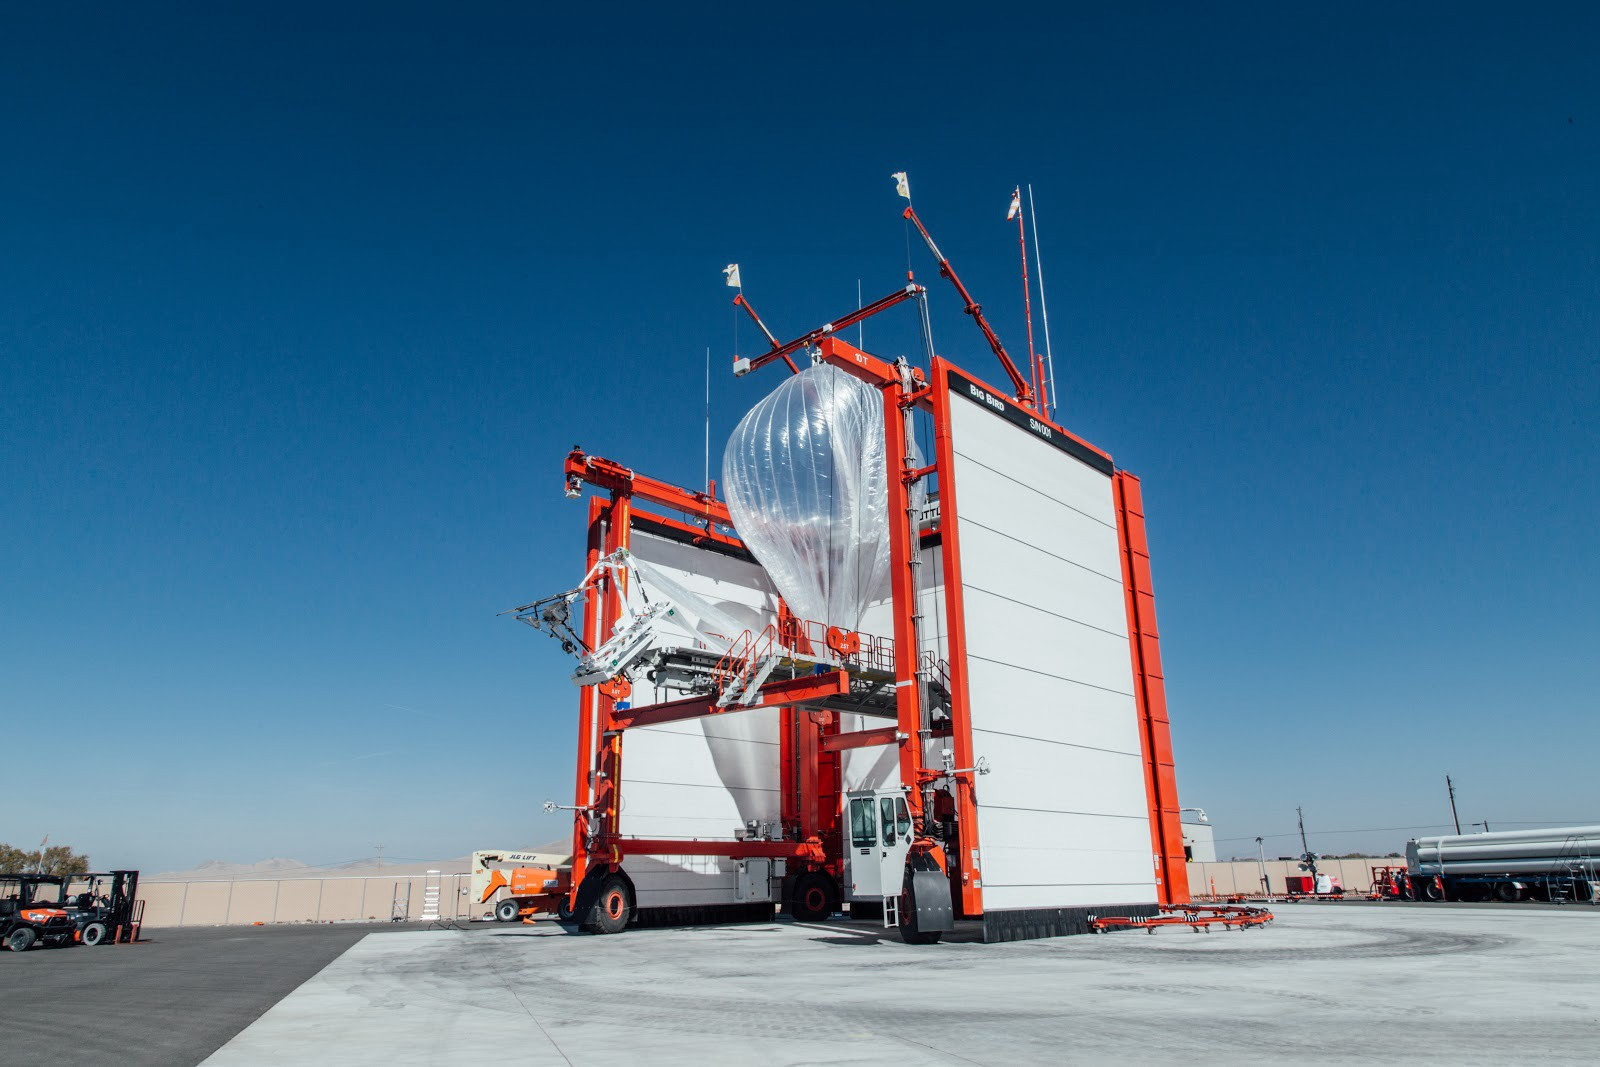 | Source: Project Loom | A Project Loom balloon preparing for flight at the launching facility in Nevada.